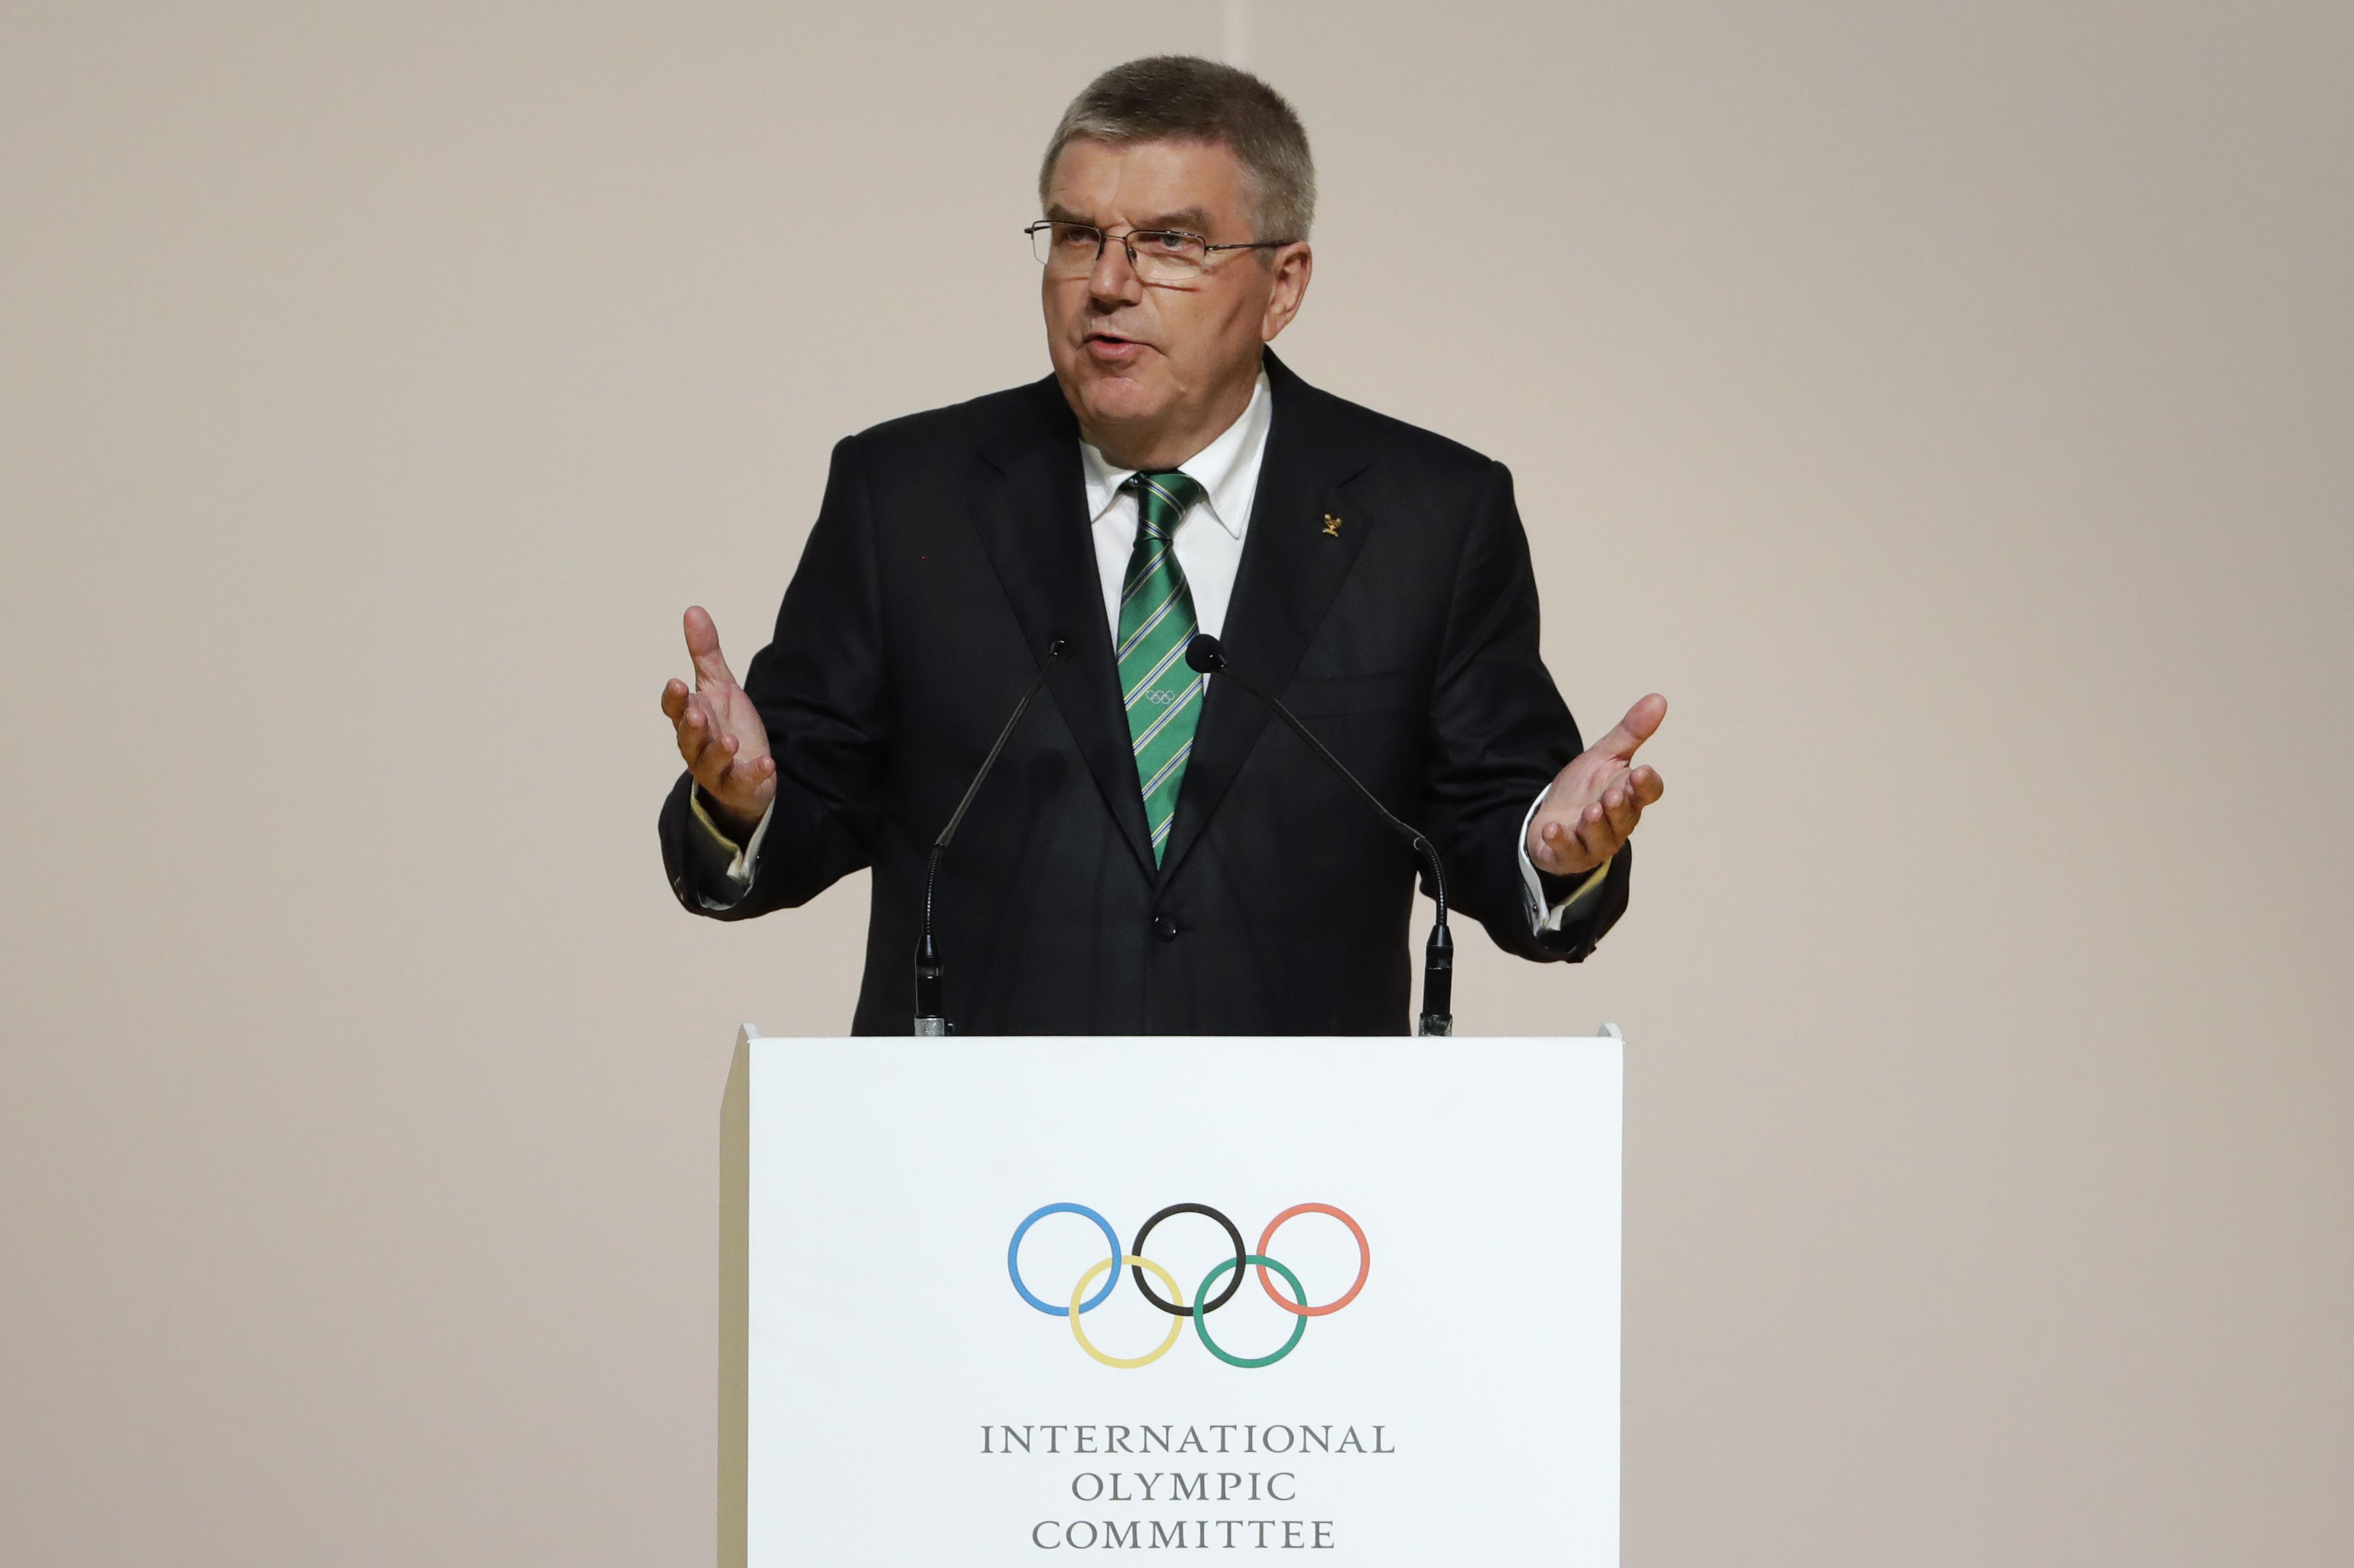 International Olympic Committee President Thomas Bach speaks during the Opening Ceremony of the IOC Session at the 2016 Summer Olympics at the Cidade das Artes in Rio de Janeiro, Brazil, Monday, Aug. 1, 2016. (AP Photo/David Goldman)